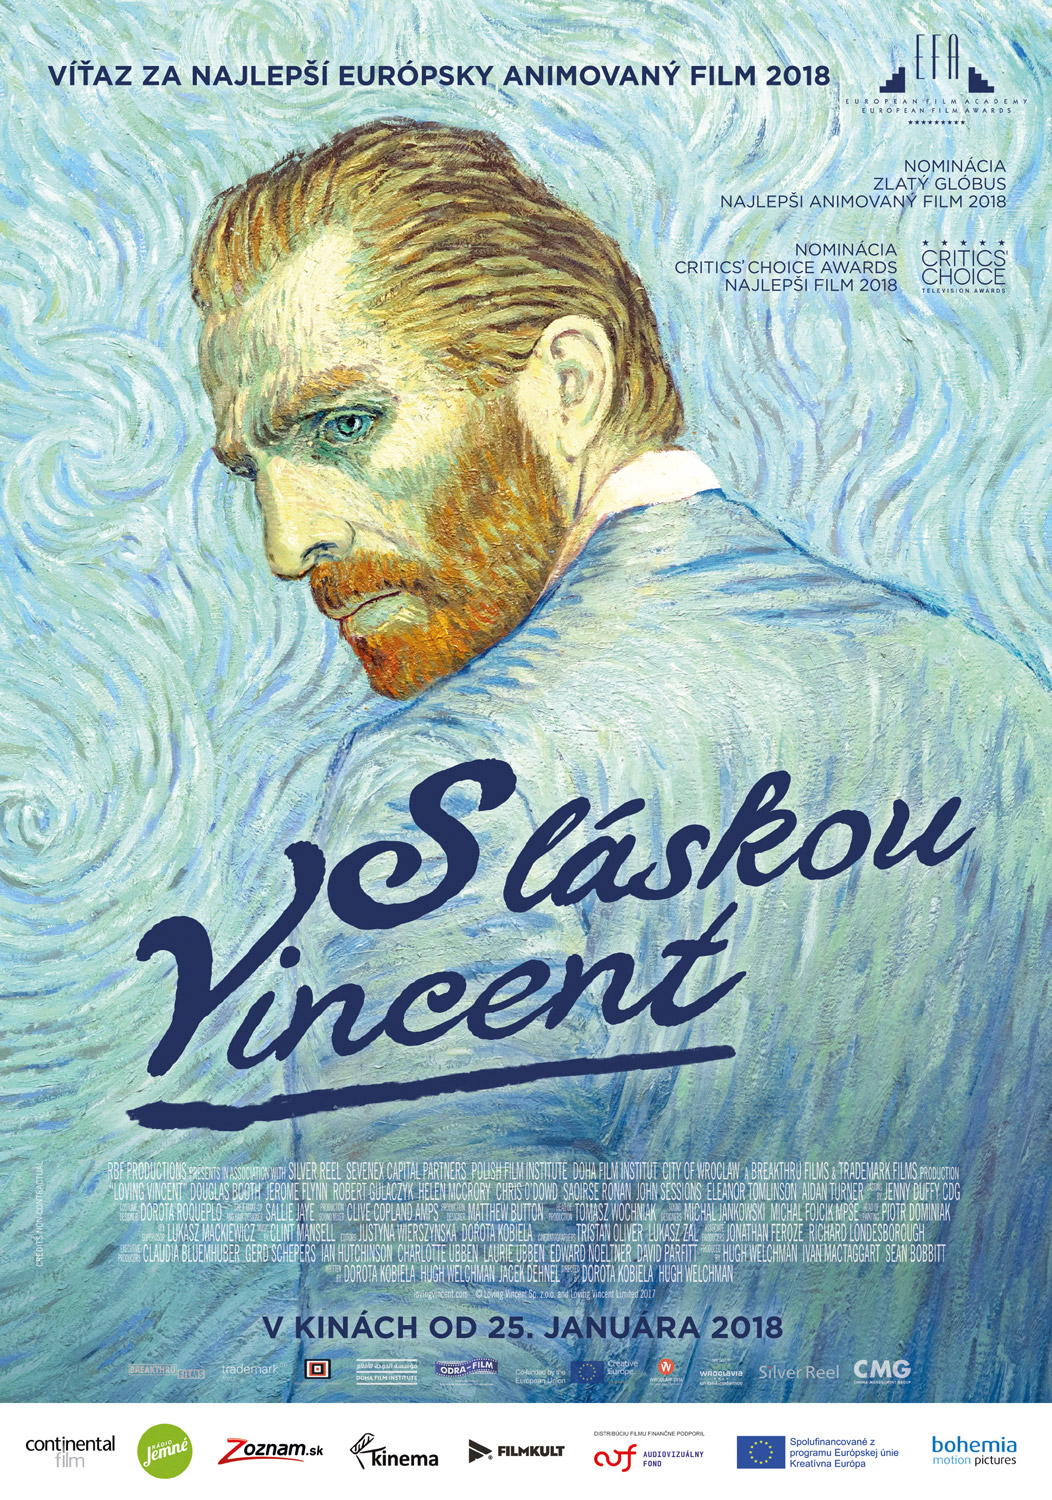 http://www.continental-film.sk/images/stories/postery/s-laskou-vincent-poster.jpg